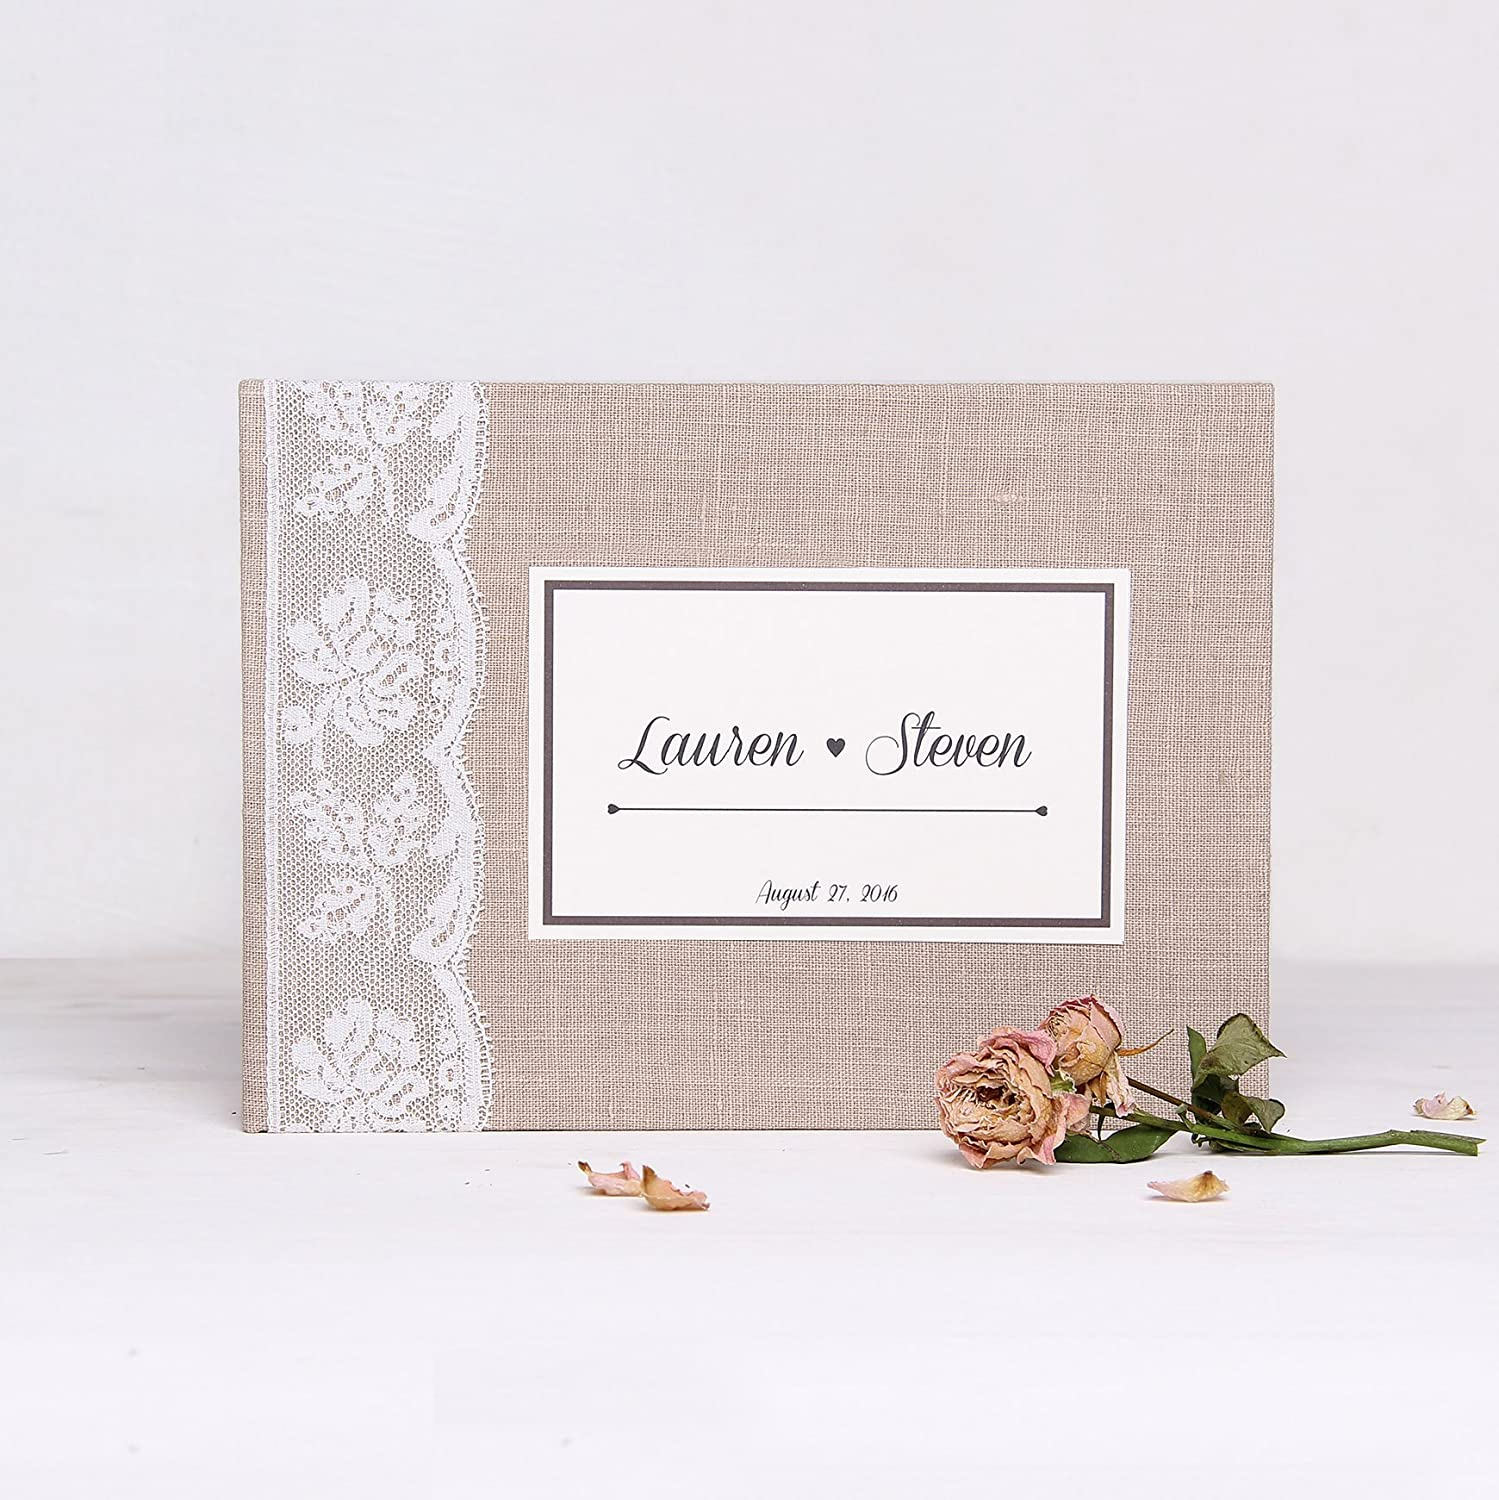 Wedding Album Rustic Light Lace Photo Guest book by Liumy